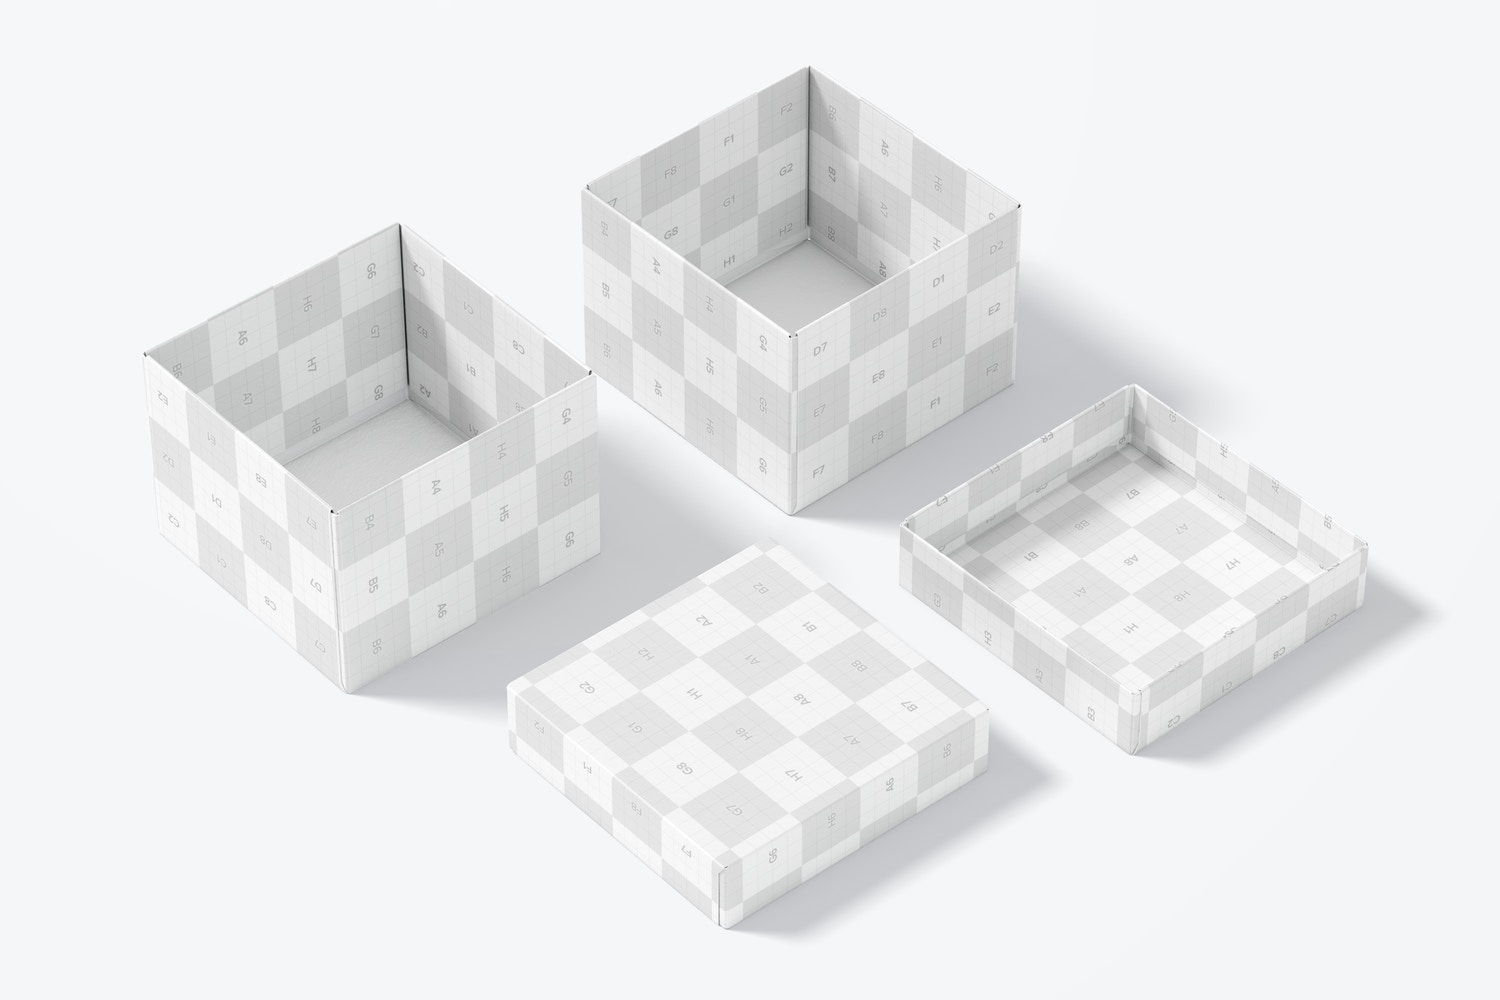 This scene gives you the option to show the inside of the boxes.